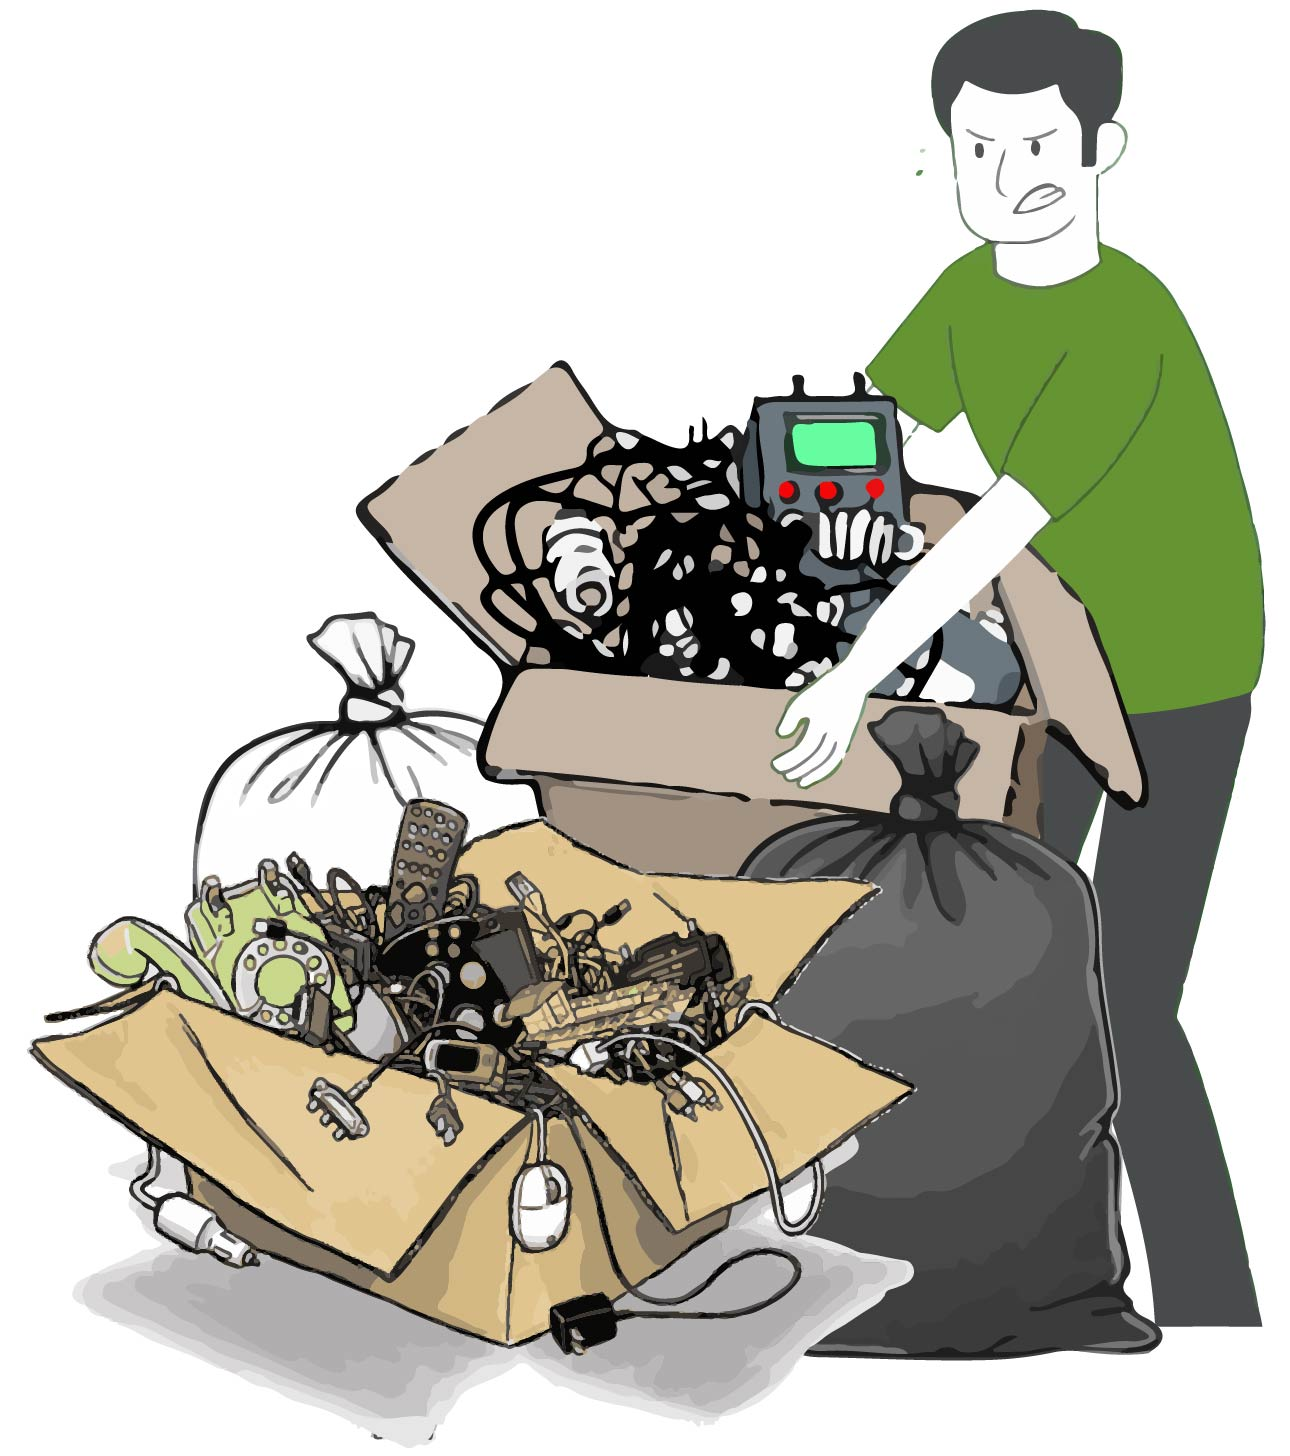 Quick Junk Removal Services in Oatfield, OR